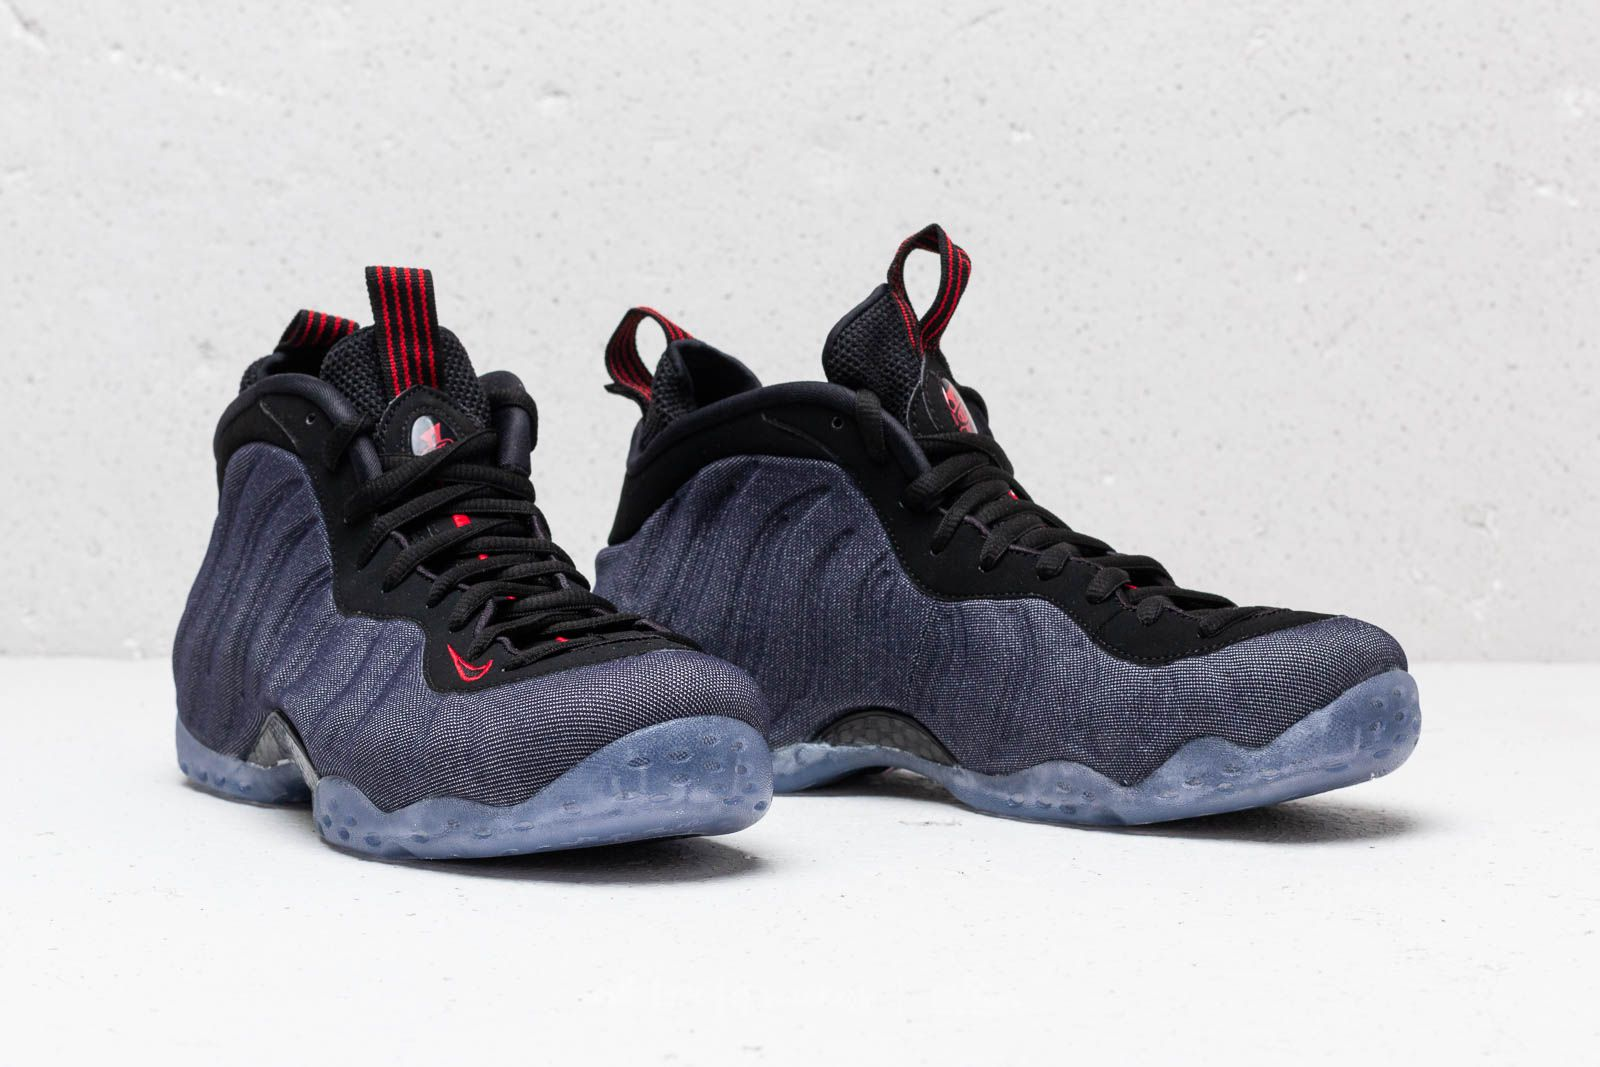 finest selection dc218 e7b89 usa nike air foamposite pro 3faa8 14422  aliexpress nike air foamposite one  obsidian black university red at a great price 218 68f88 e9f6b